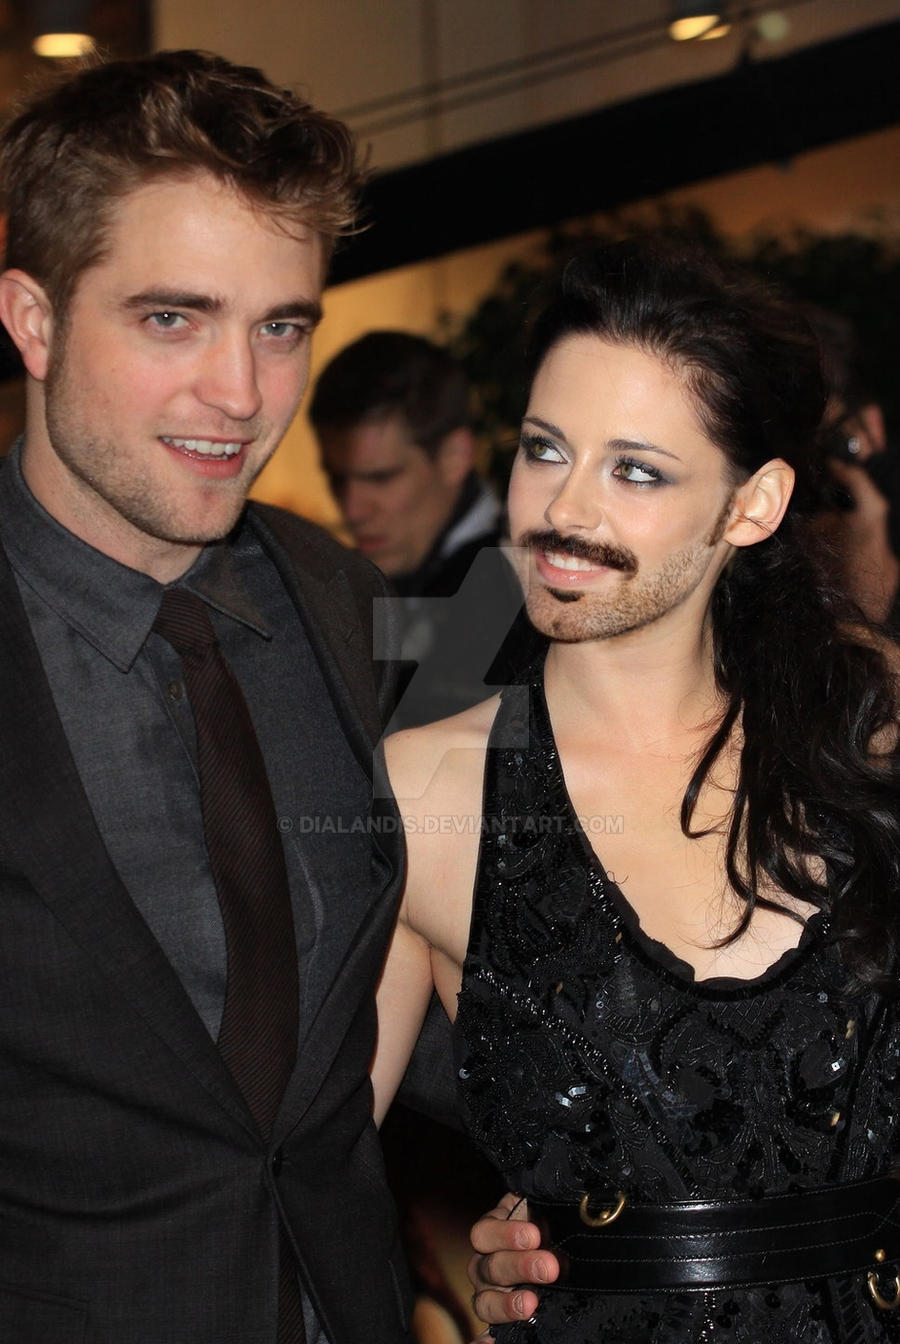 are robert and kristen still dating 2014 More robert pattinson robert pattinson feels guilty when fans camp out to see him robert pattinson: kristen stewart is the most honest and genuine person 'breaking dawn' will be the sexiest 'twilig.